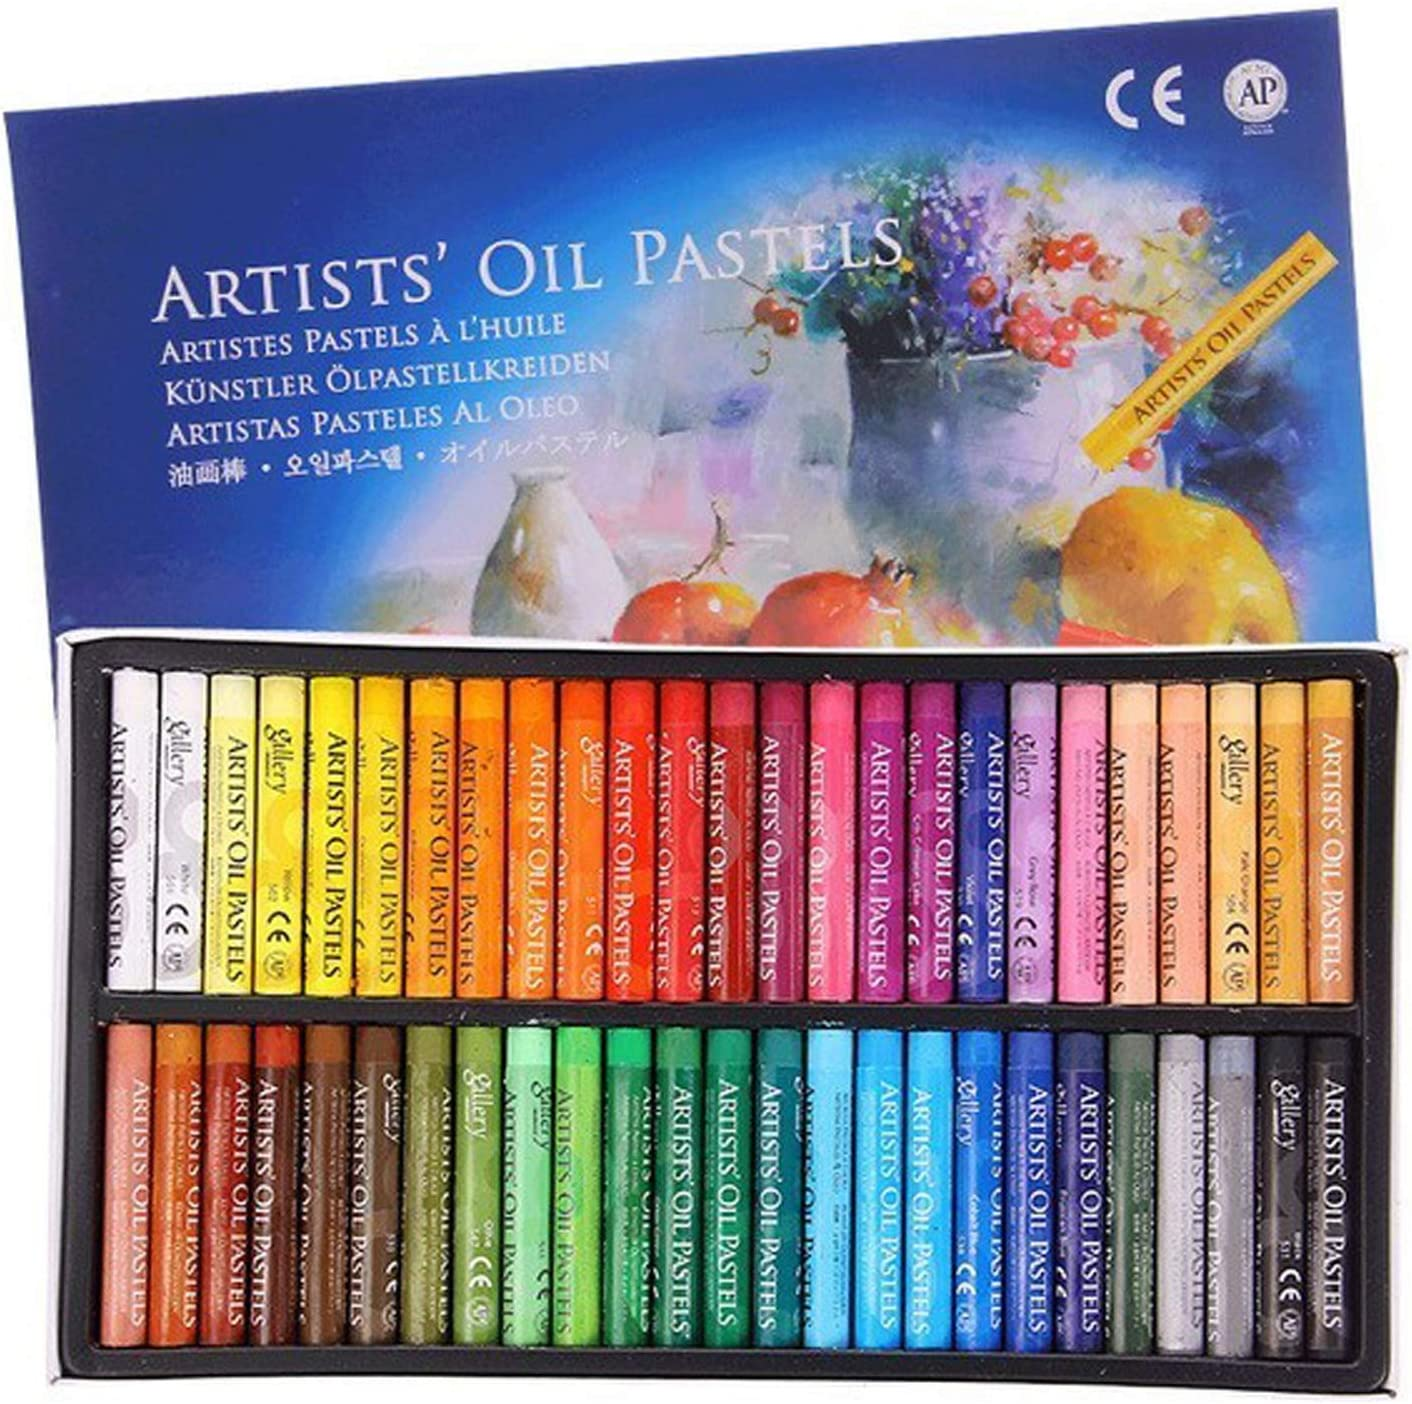 Soft Oil Pastels Set Paint Crayons Sticks Bundle Silky Artist Pastel Set Professional Drawing Pastel for Kid Adults Colouring DIY Crafting Artwork Art Stationery School Supplies 12 Colors